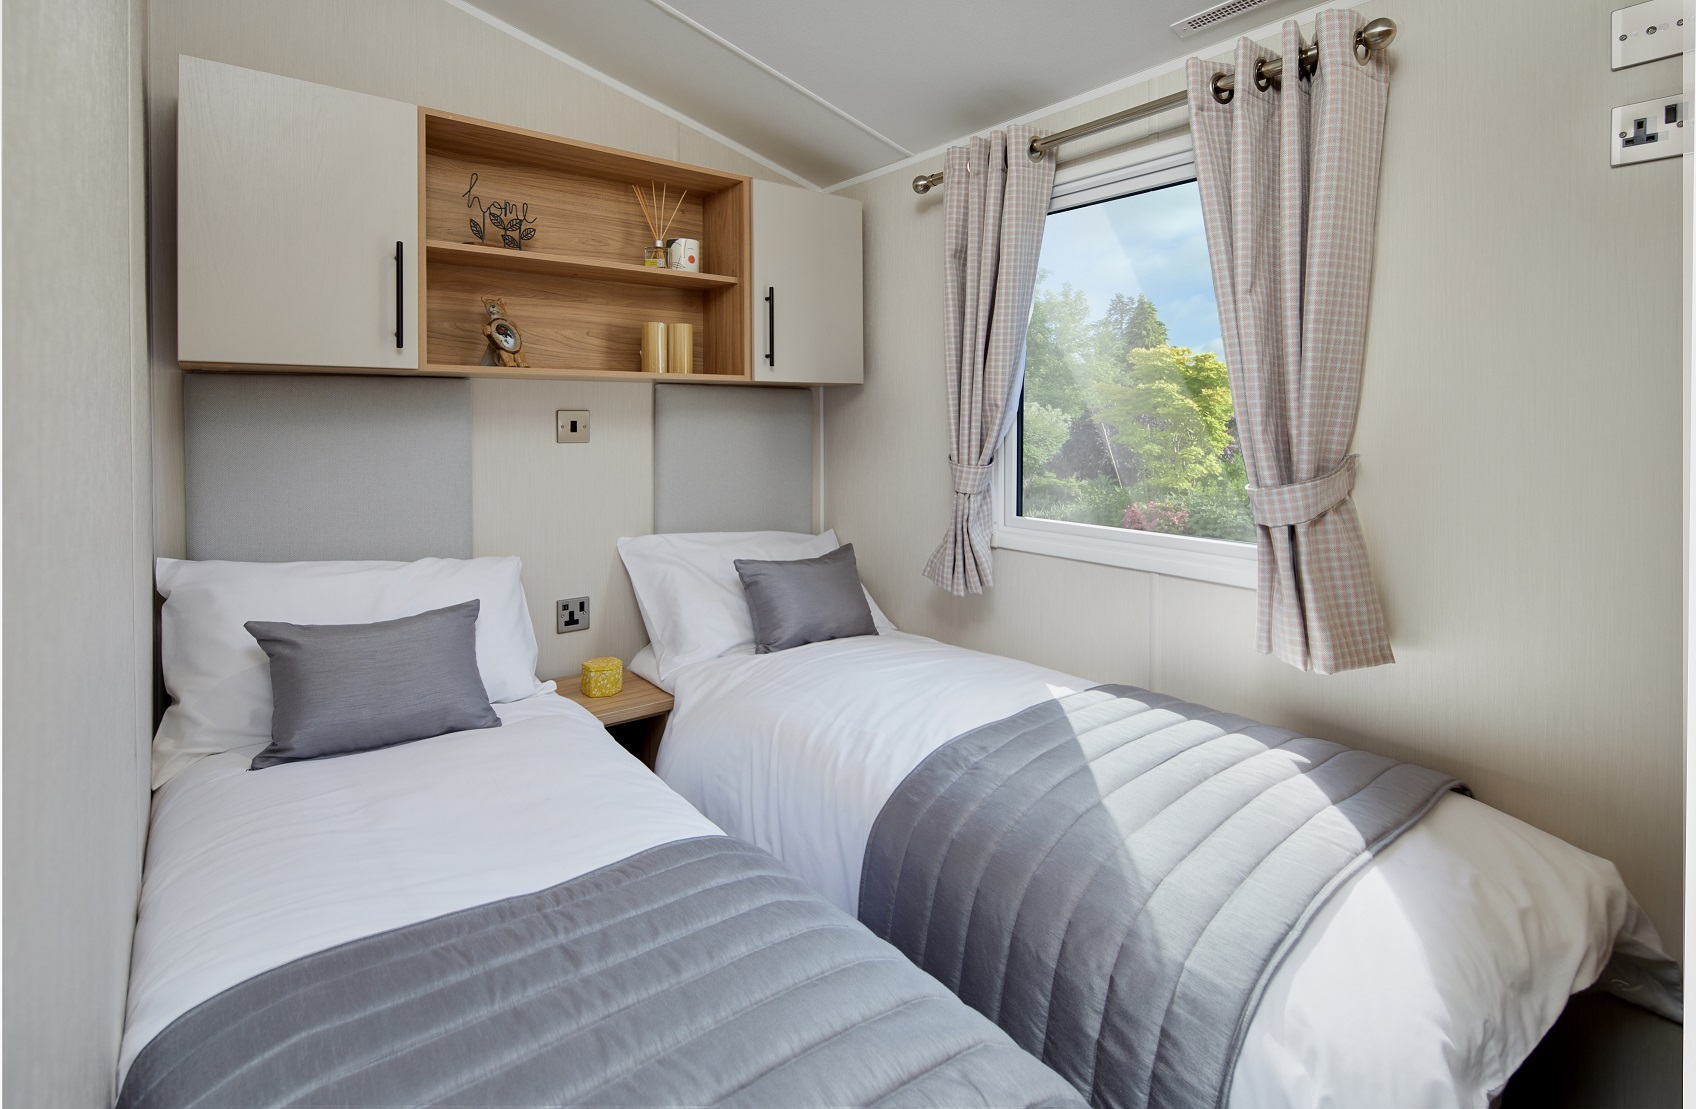 Willerby Manor: Static Caravans and Holiday Homes for Sale on Caravan Parks, Pickering, North Yorkshire Image 2